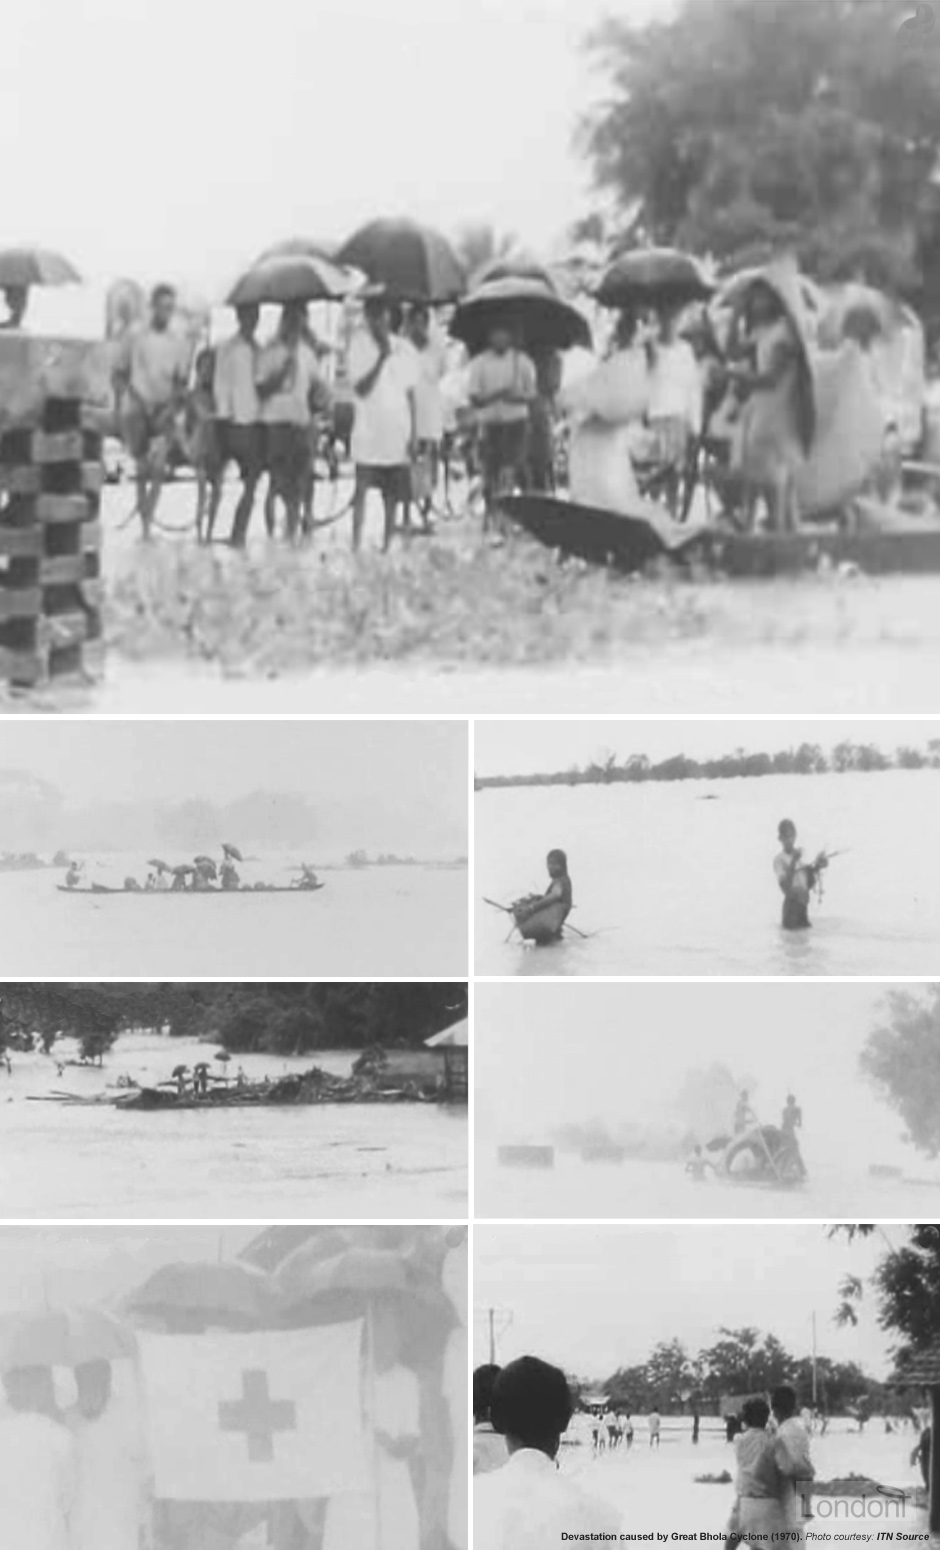 the 1970 cyclone in bangladesh Title: 1970 bhola cyclone author: owner last modified by: ne-faculty created date: 10/28/2009 11:08:44 pm document presentation format: on-screen show (4:3.